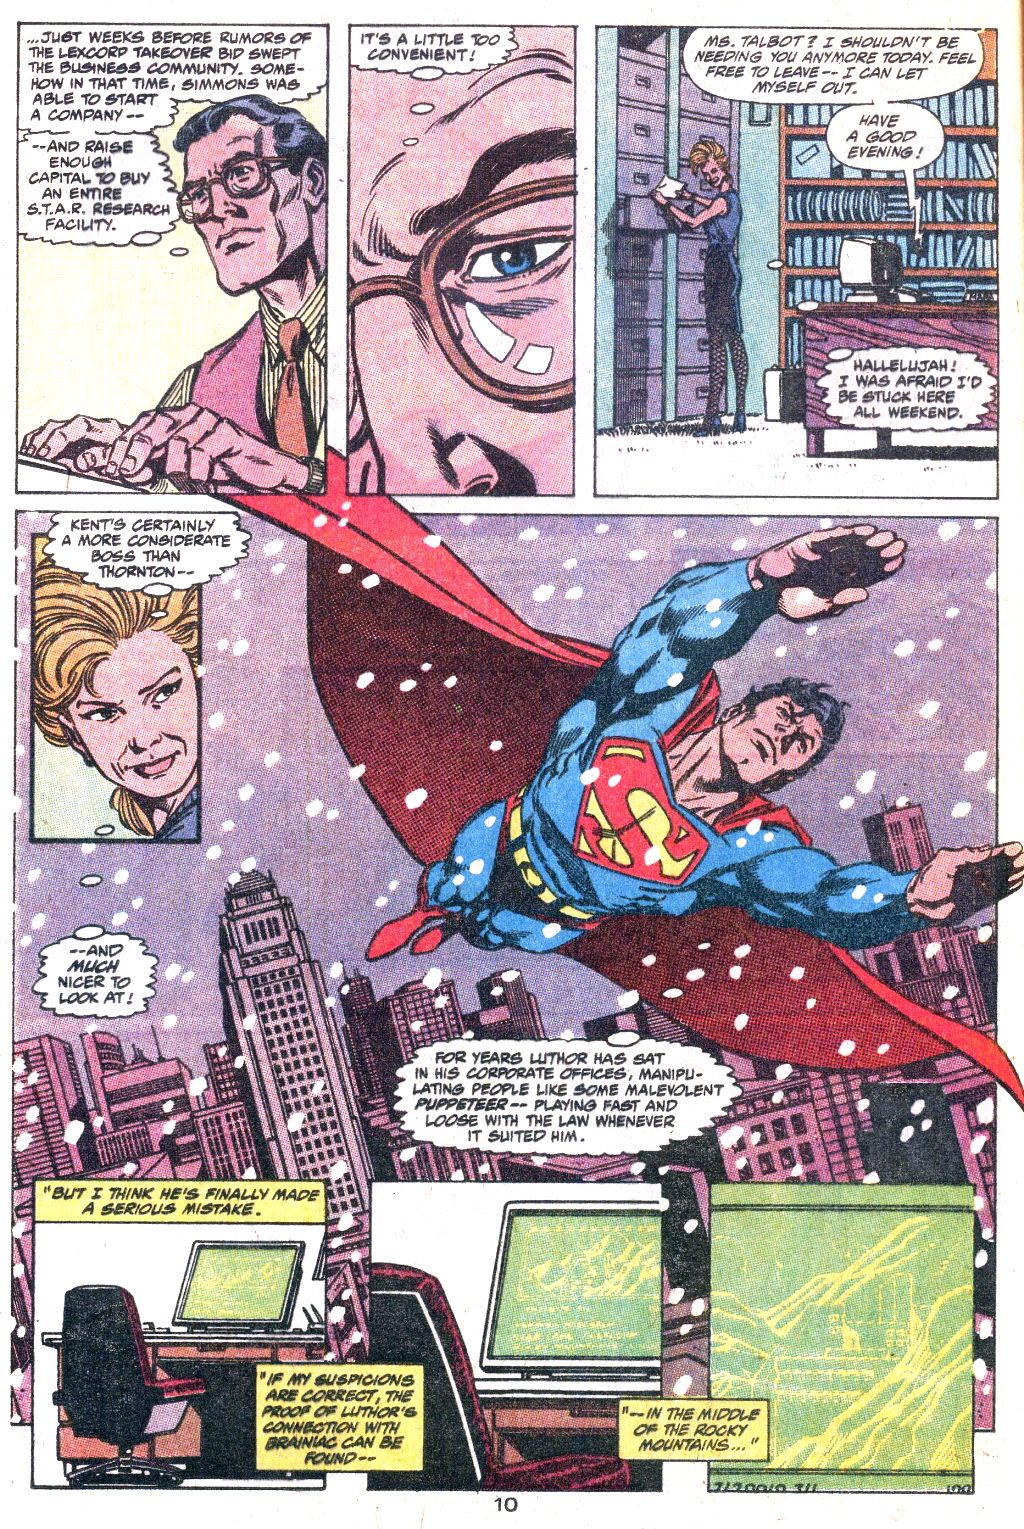 Read online Action Comics (1938) comic -  Issue #649 - 11